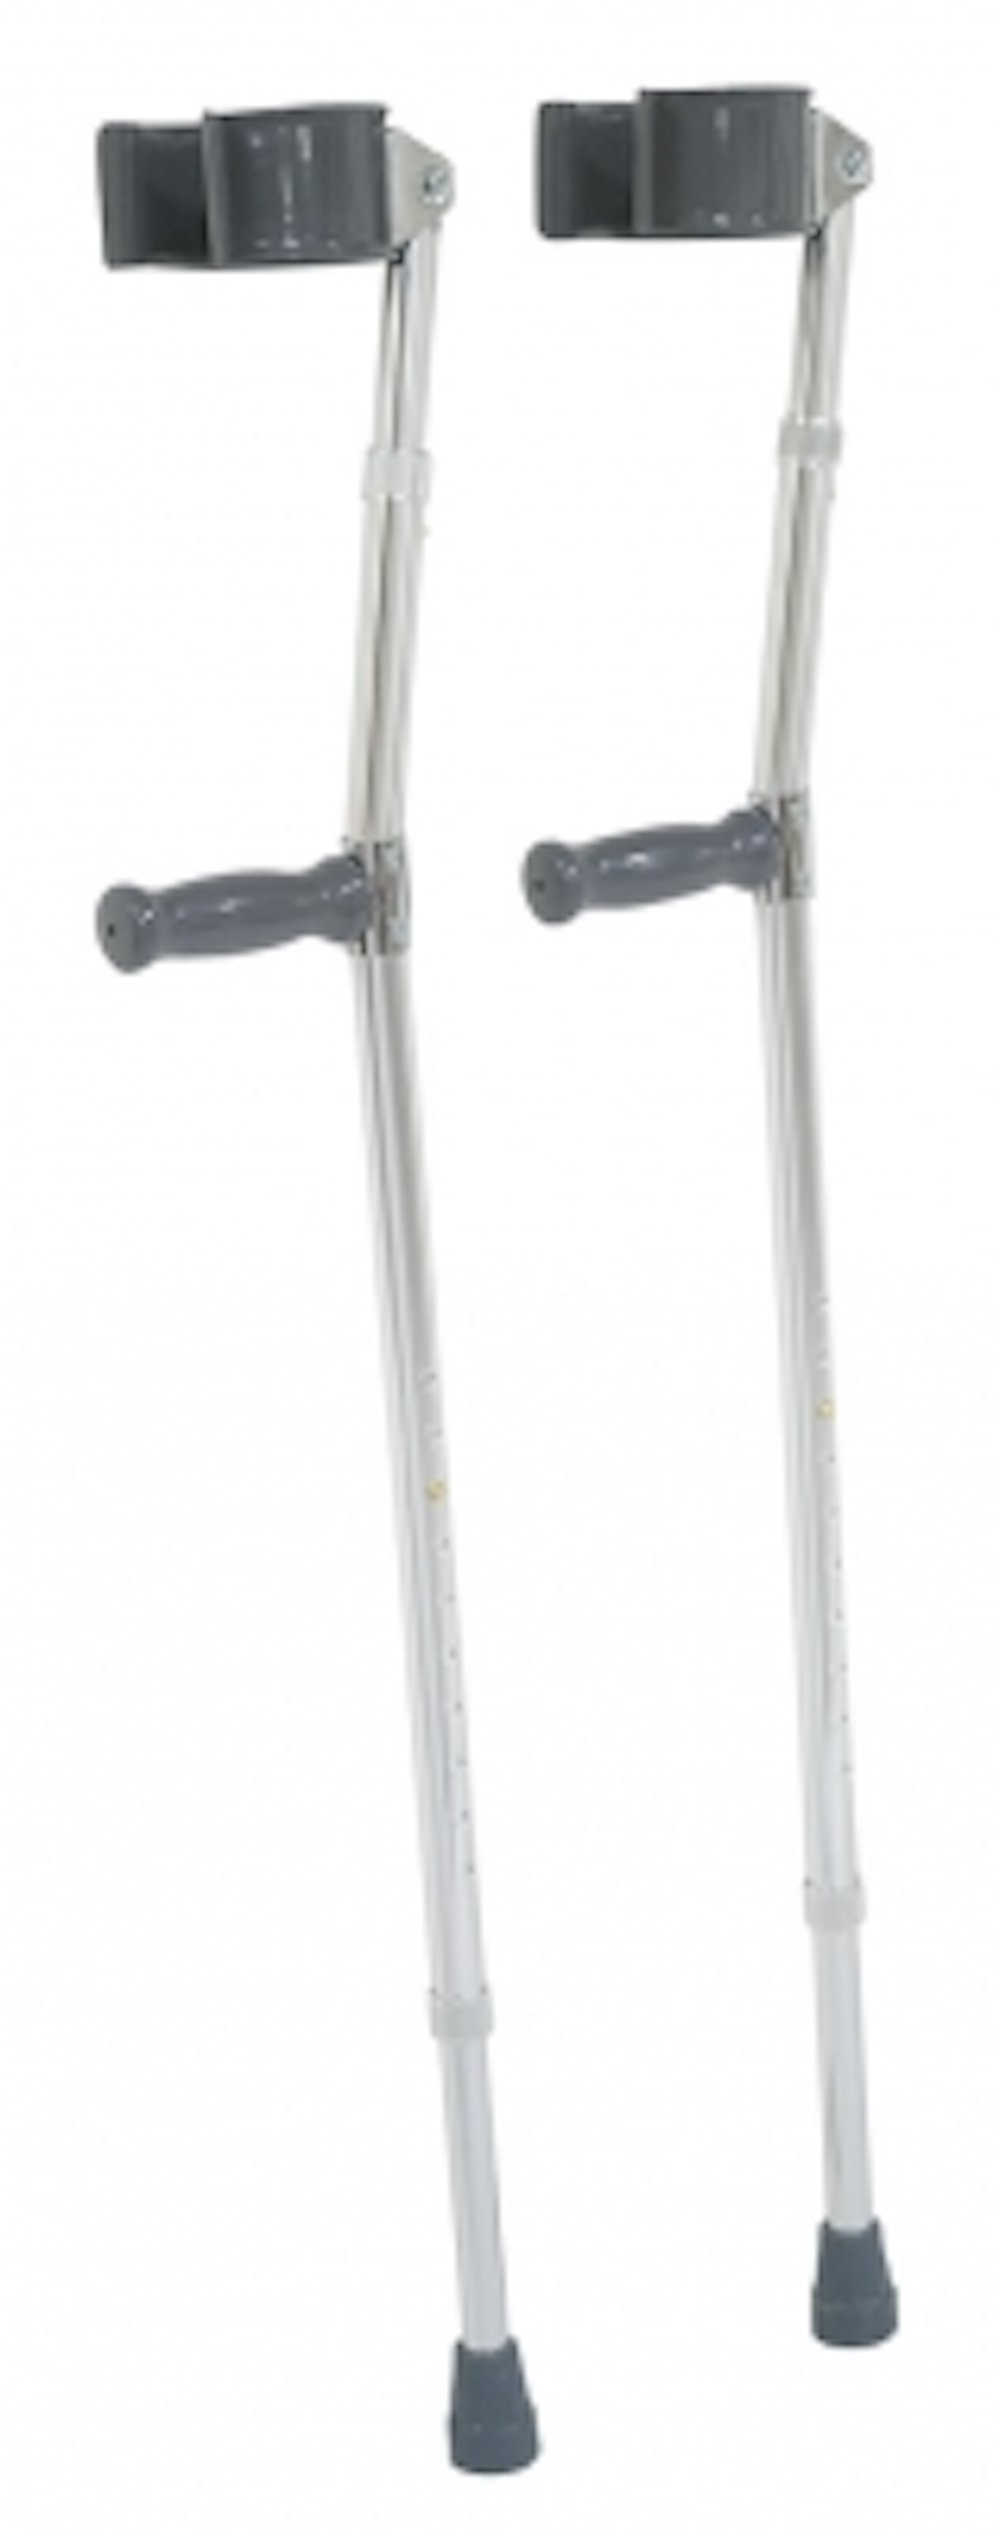 Pivit Deluxe Aluminum Forearm Crutches, 5'5''-6'4'' (Pack of 2) | Lightweight High Strength Aluminum Tubing | Design Reduces Stress Fatigue Soreness & Carpal Tunnel | Easy Push-Button Height Adjustment